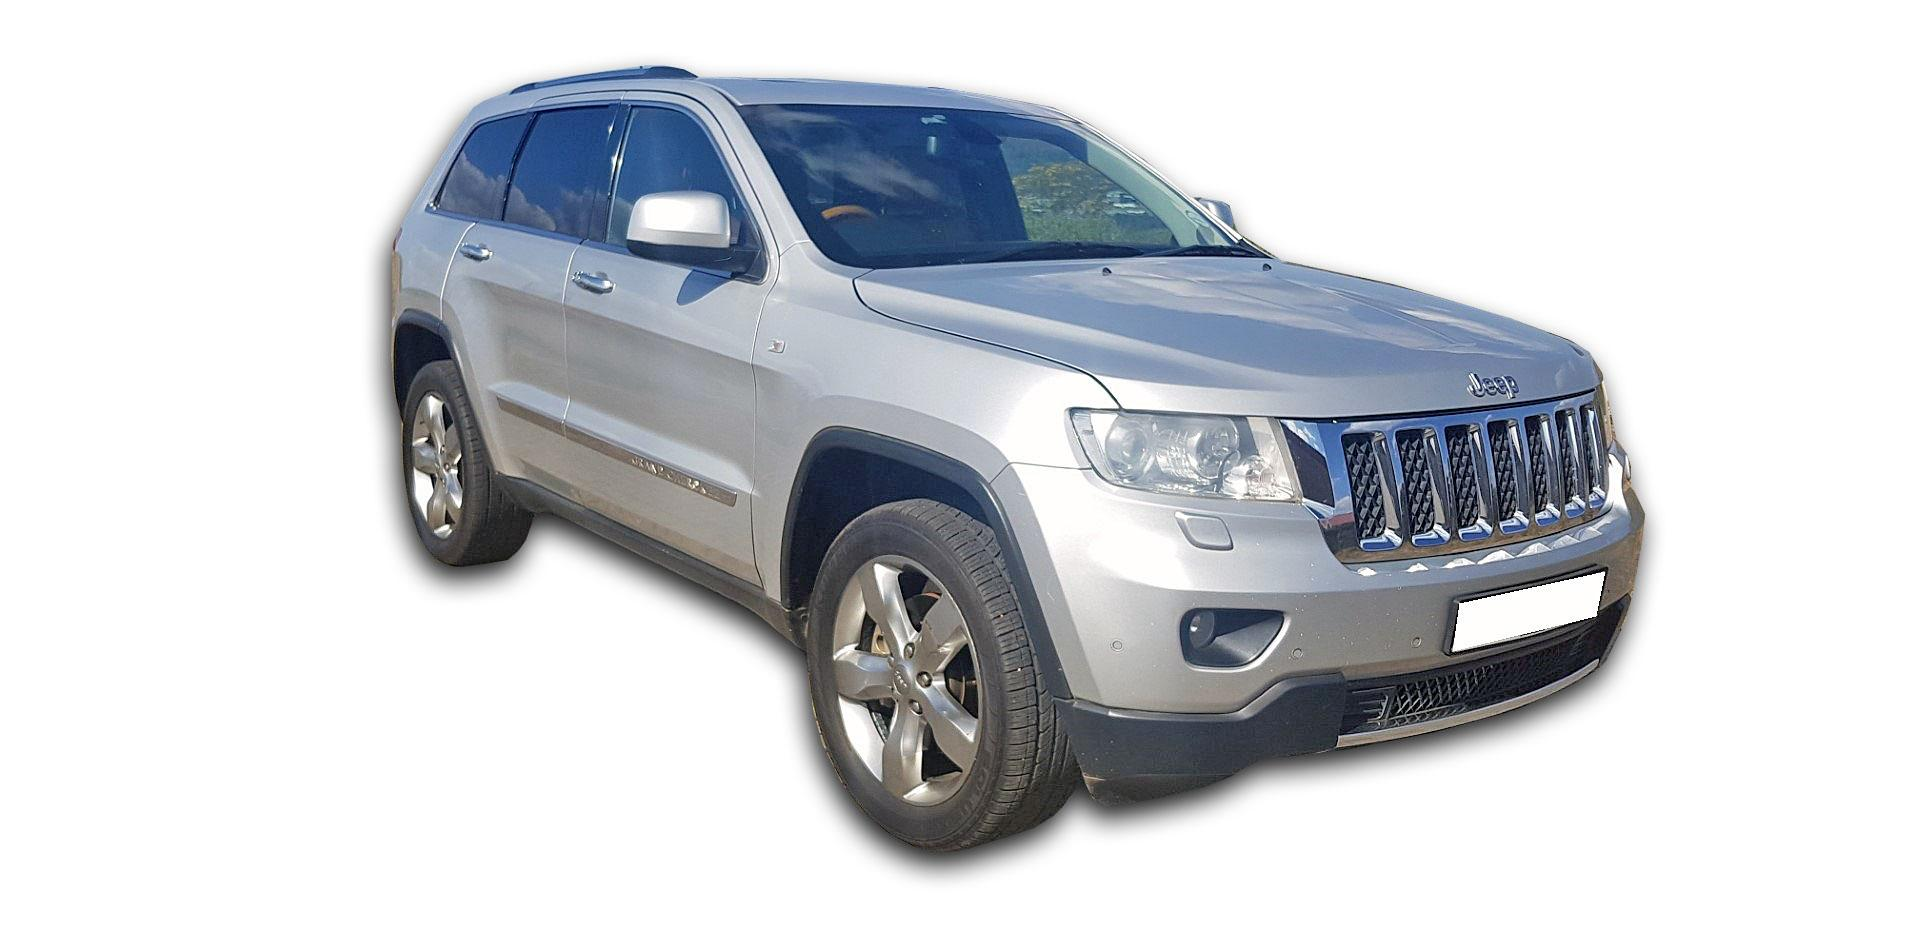 Used Jeep Grand Cherokee 3.6L Overland 2012 on auction ...